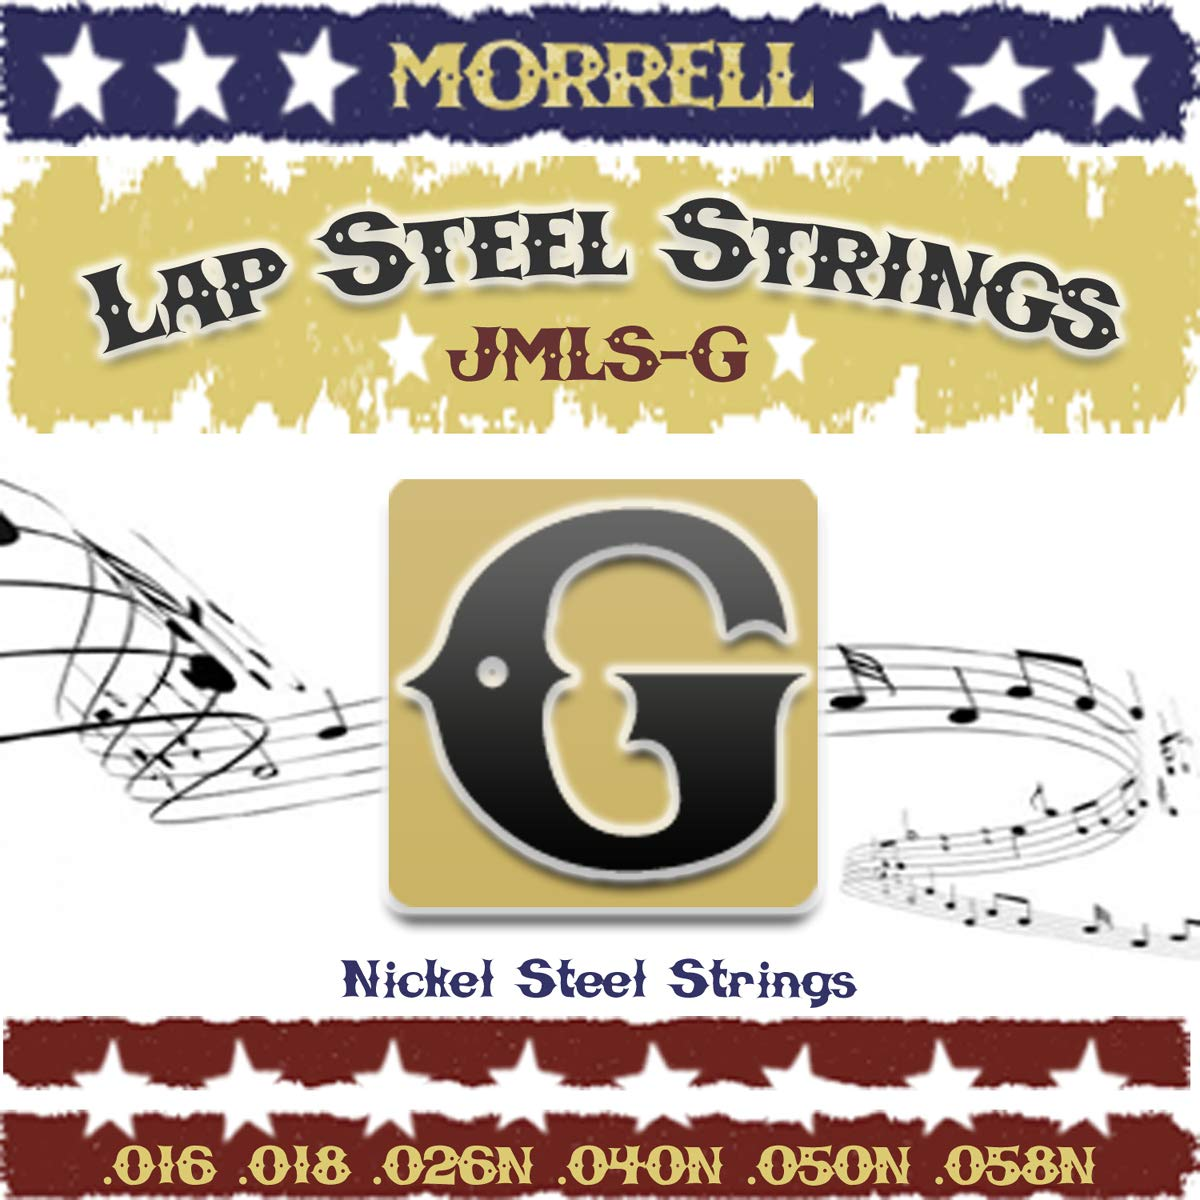 Morrell JMLSG Premium 6-String Lap Steel Guitar Strings for G Tuning 16-58 (3-Pack) by Morrell